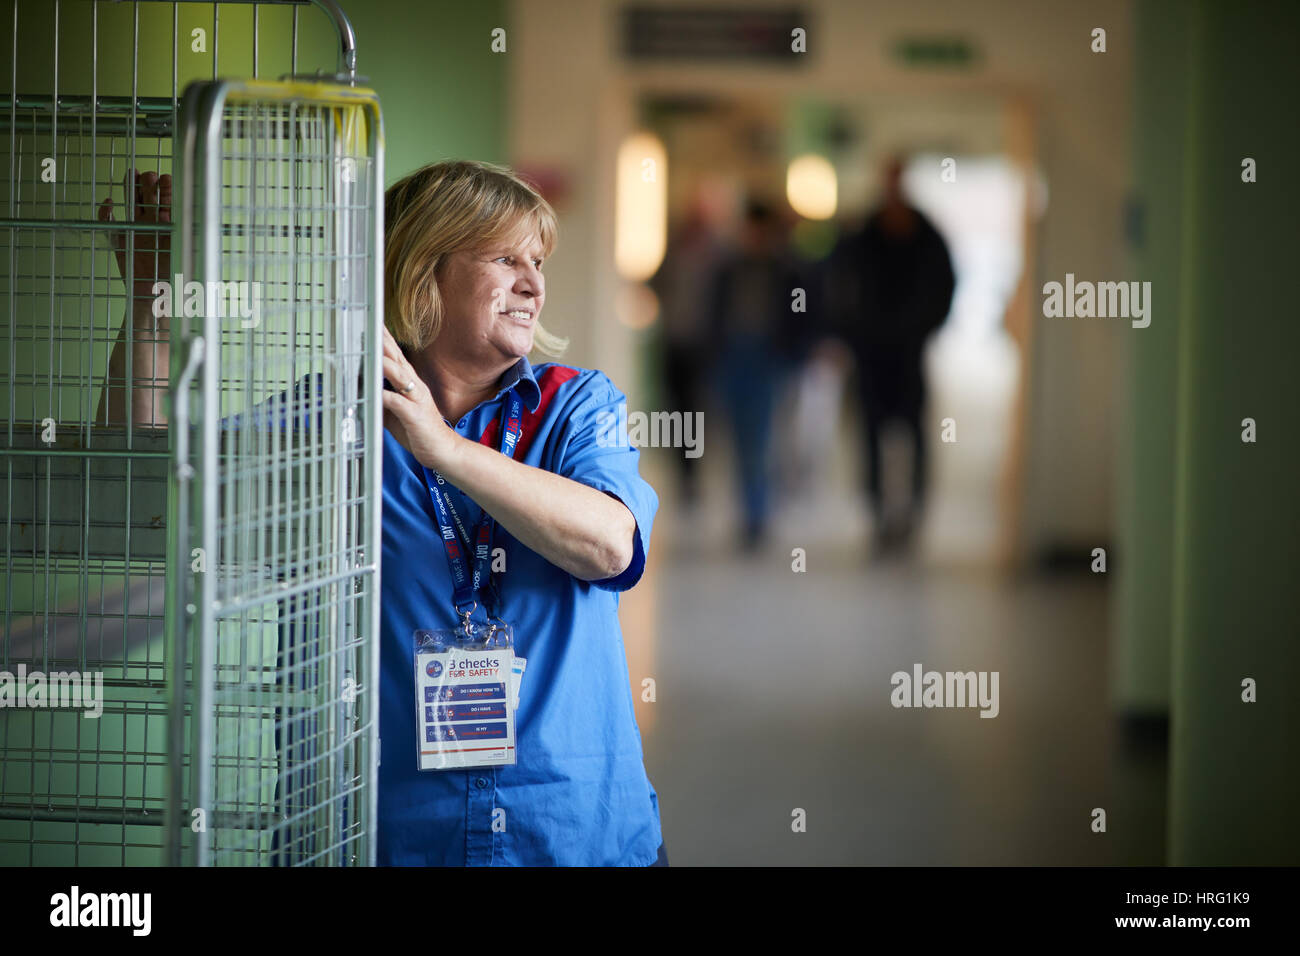 Sodexo porter corridor, interior, working, pushing,Sodexo, Stoke-on-Trent. Stoke University Hospital, Interior, Great - Stock Image